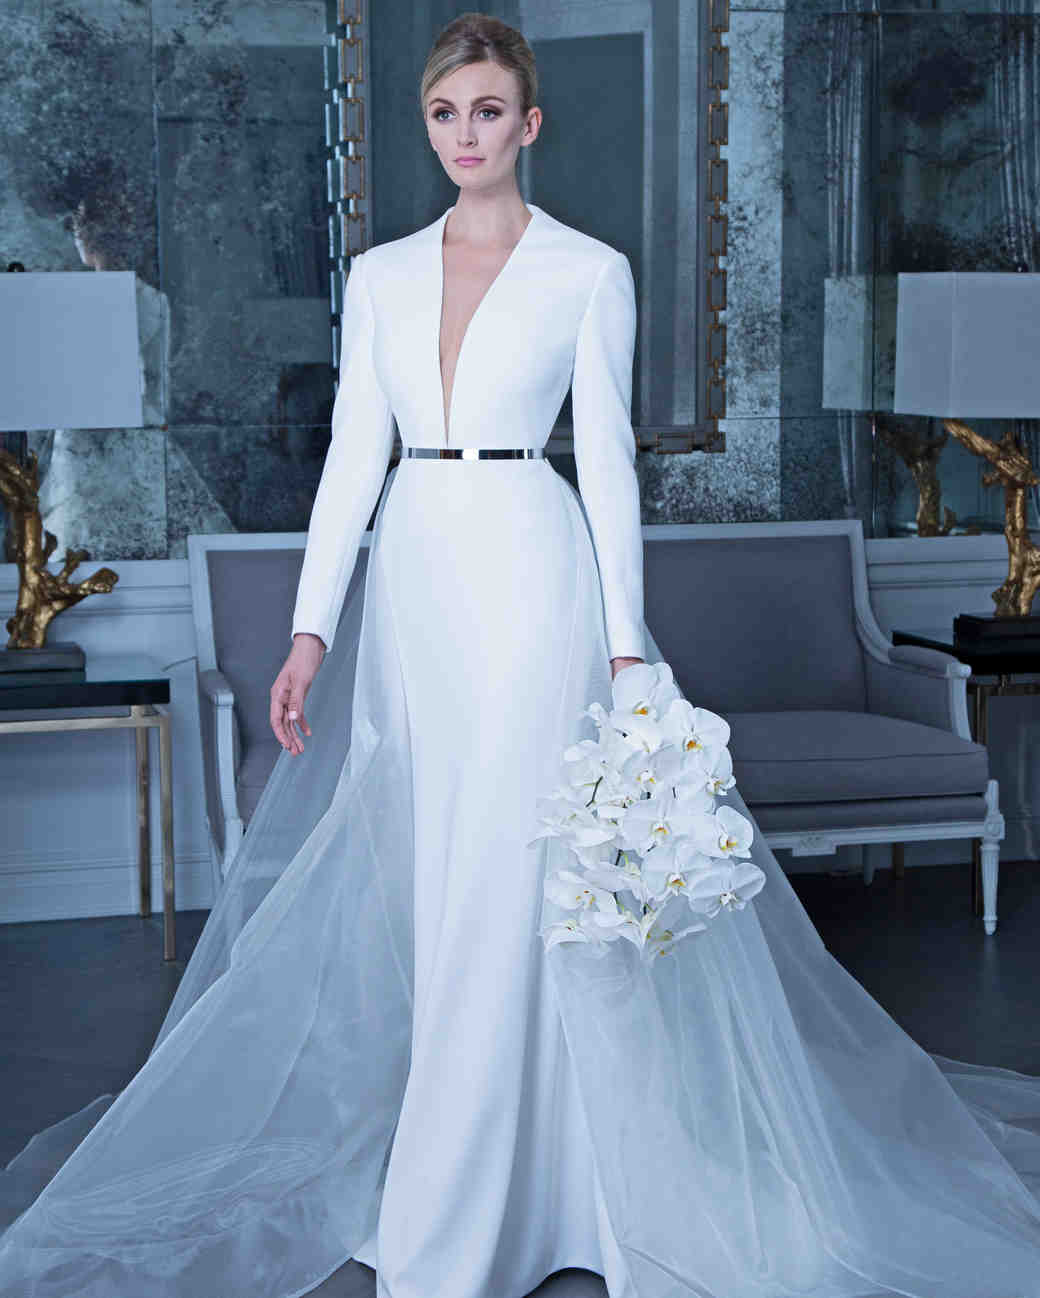 Long-Sleeved Wedding Dresses We Love | Martha Stewart Weddings